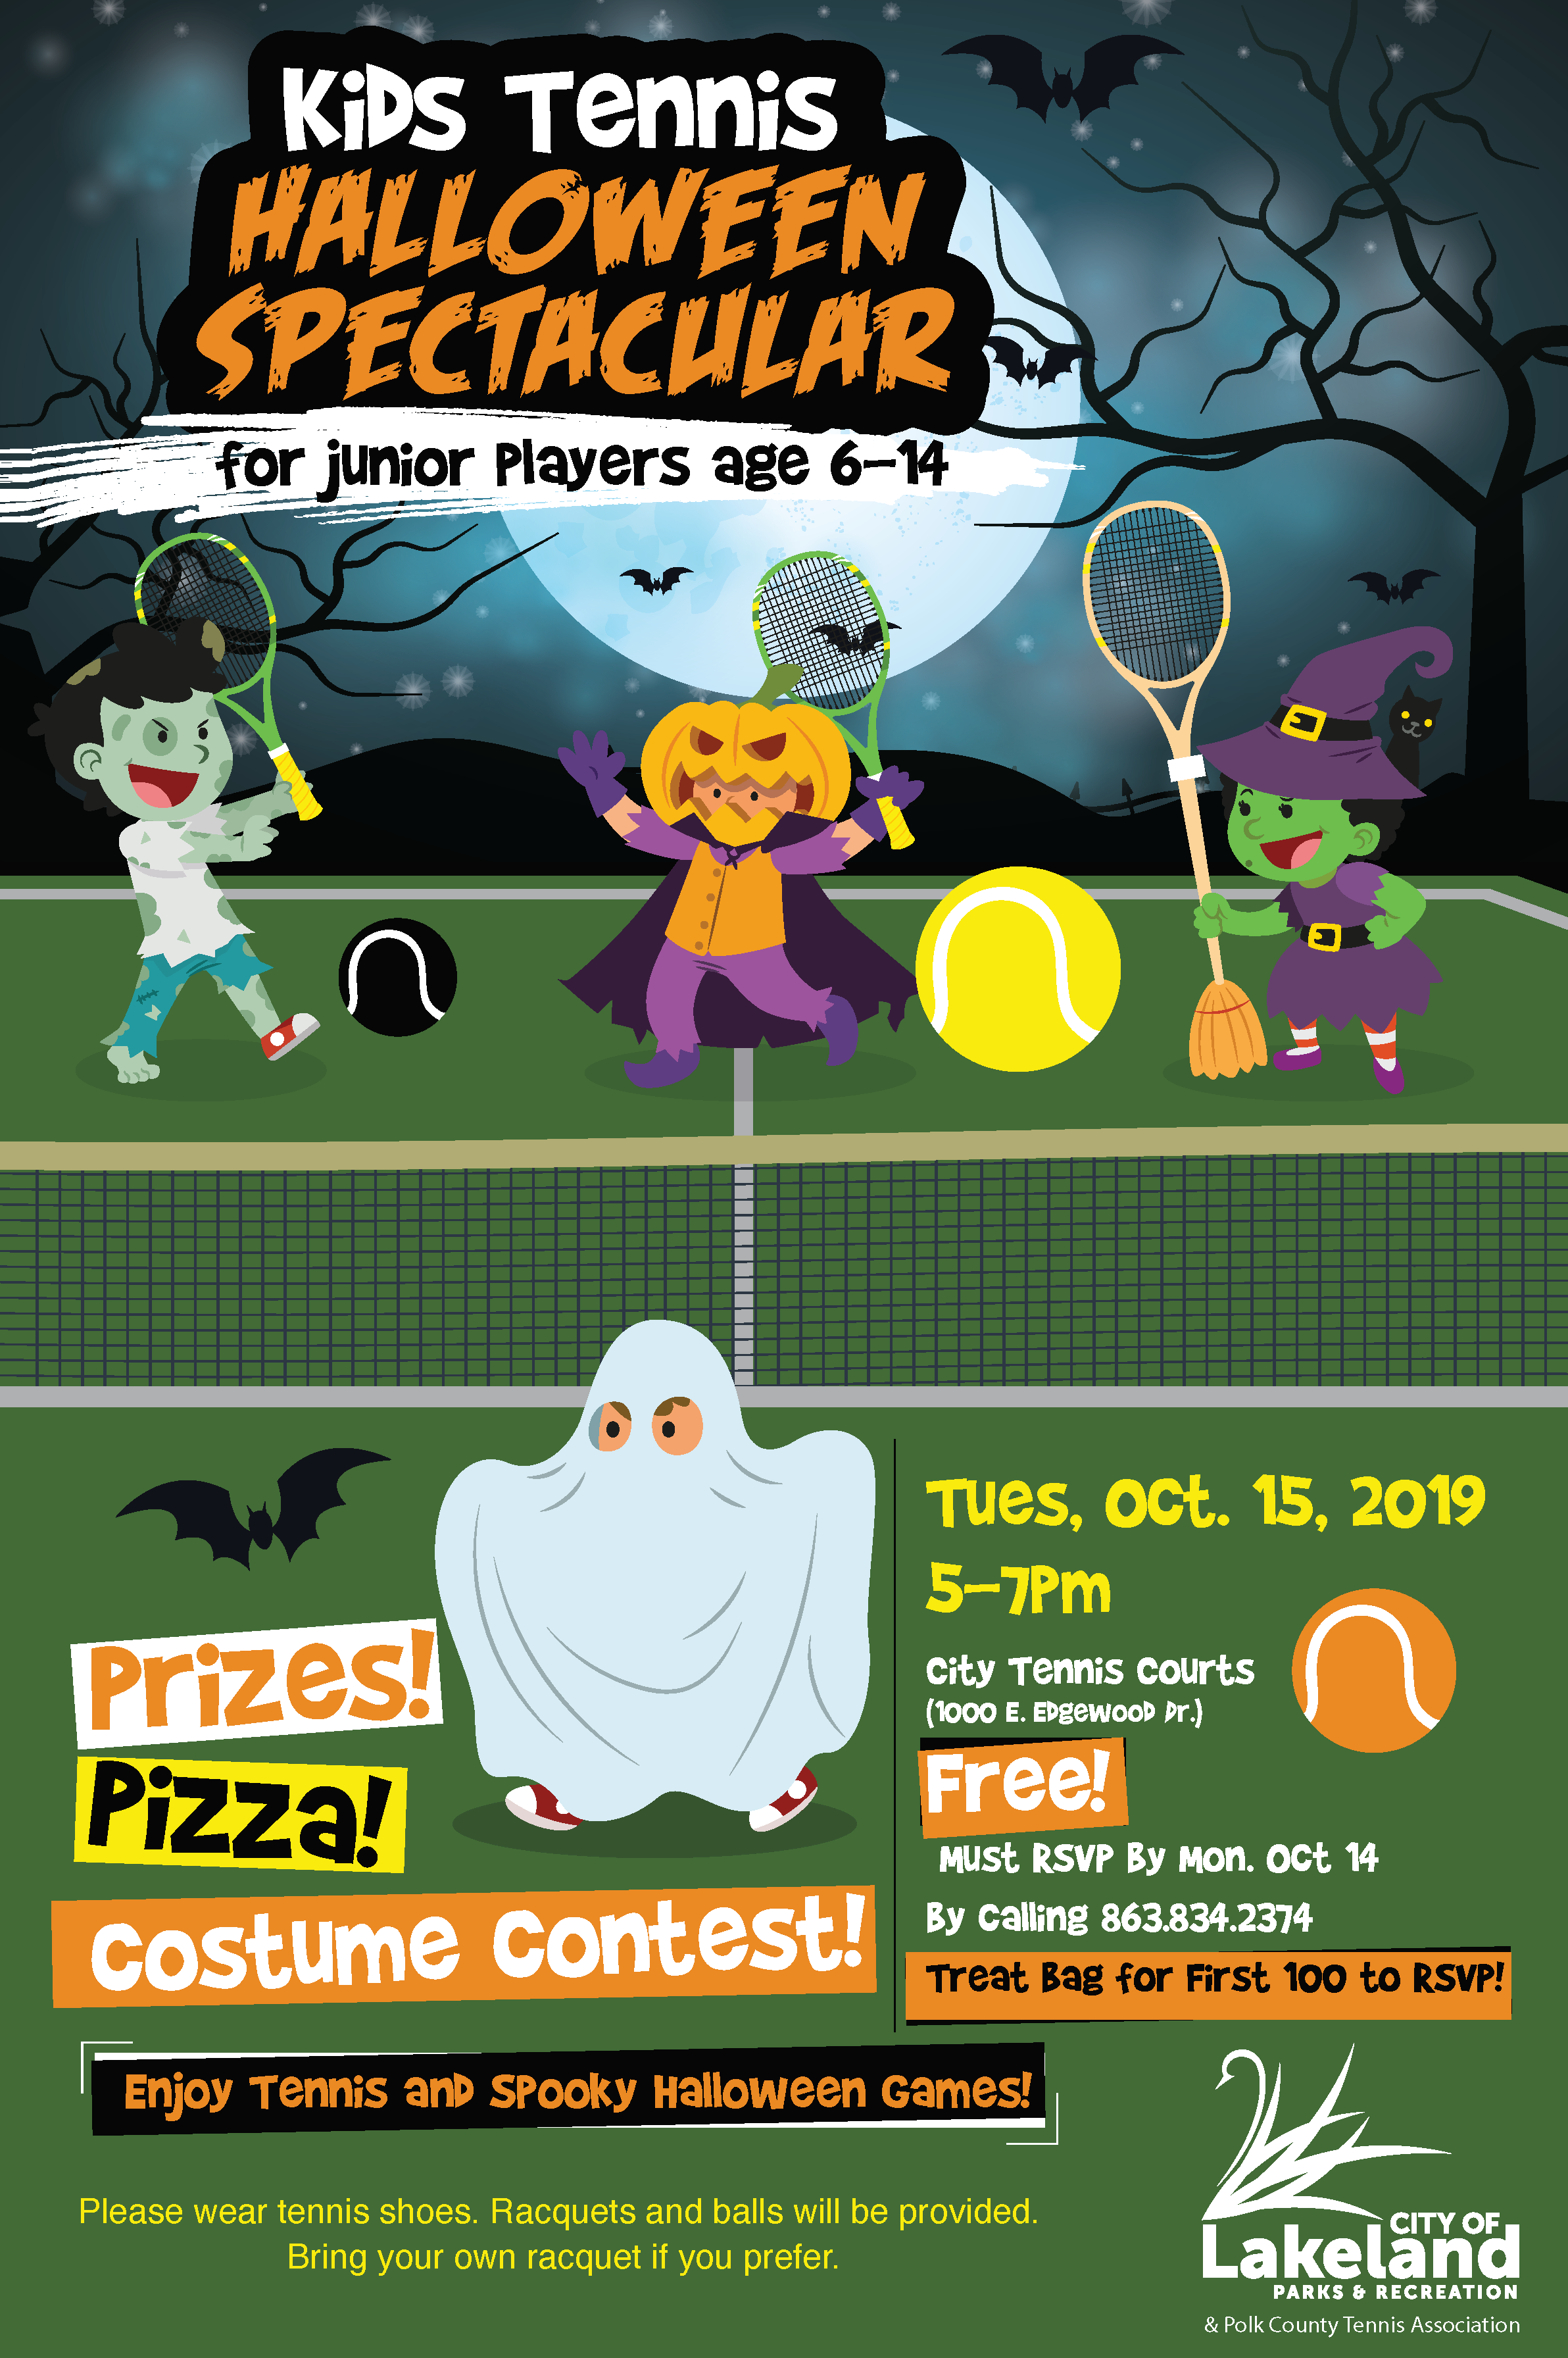 Kids Tennis Halloween Spectacular 2019 - October 15 5-7 pm - RSVP by October 14 - Beerman Family Tennis Center